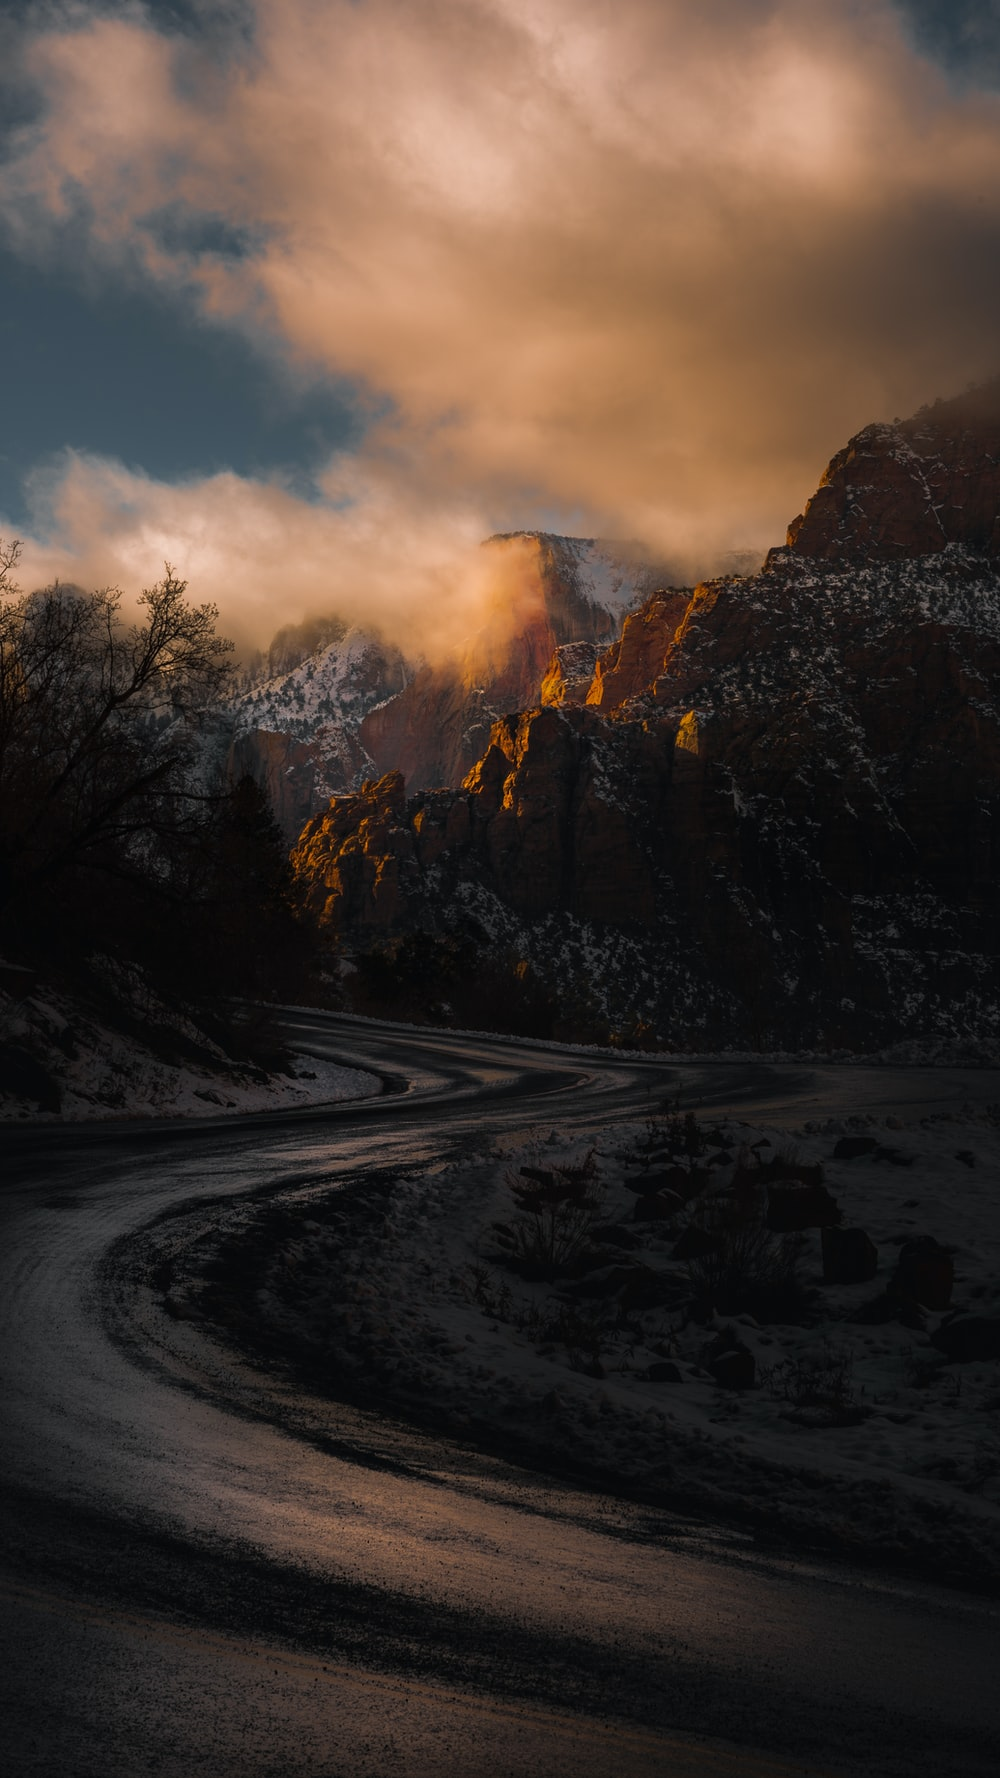 roadway in the middle of rocky mountains